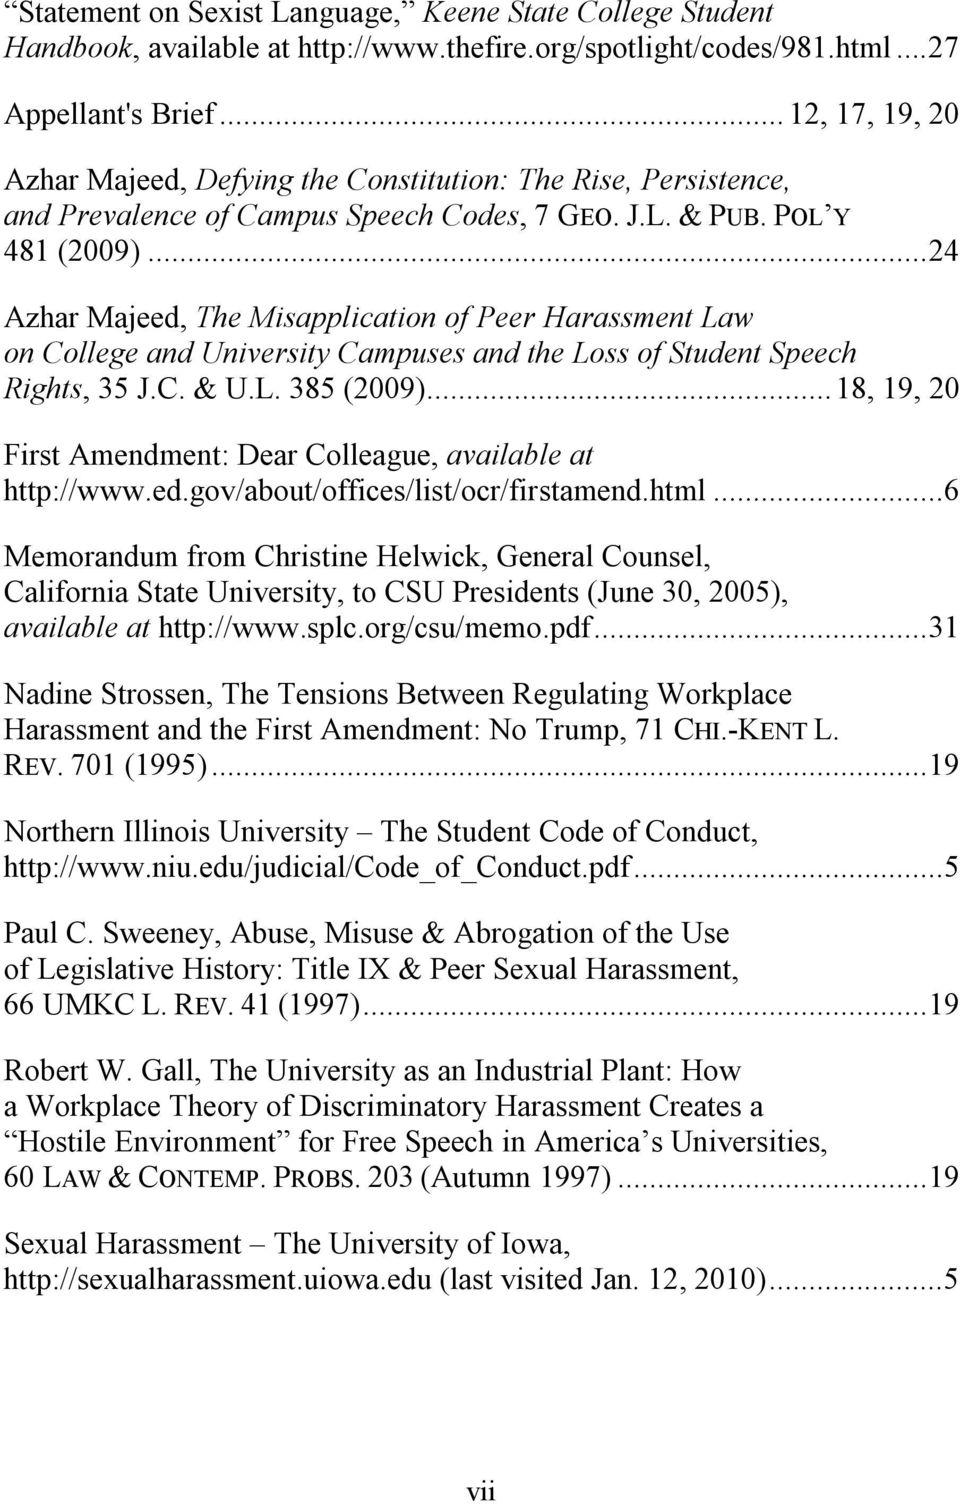 .. 24 Azhar Majeed, The Misapplication of Peer Harassment Law on College and University Campuses and the Loss of Student Speech Rights, 35 J.C. & U.L. 385 (2009).